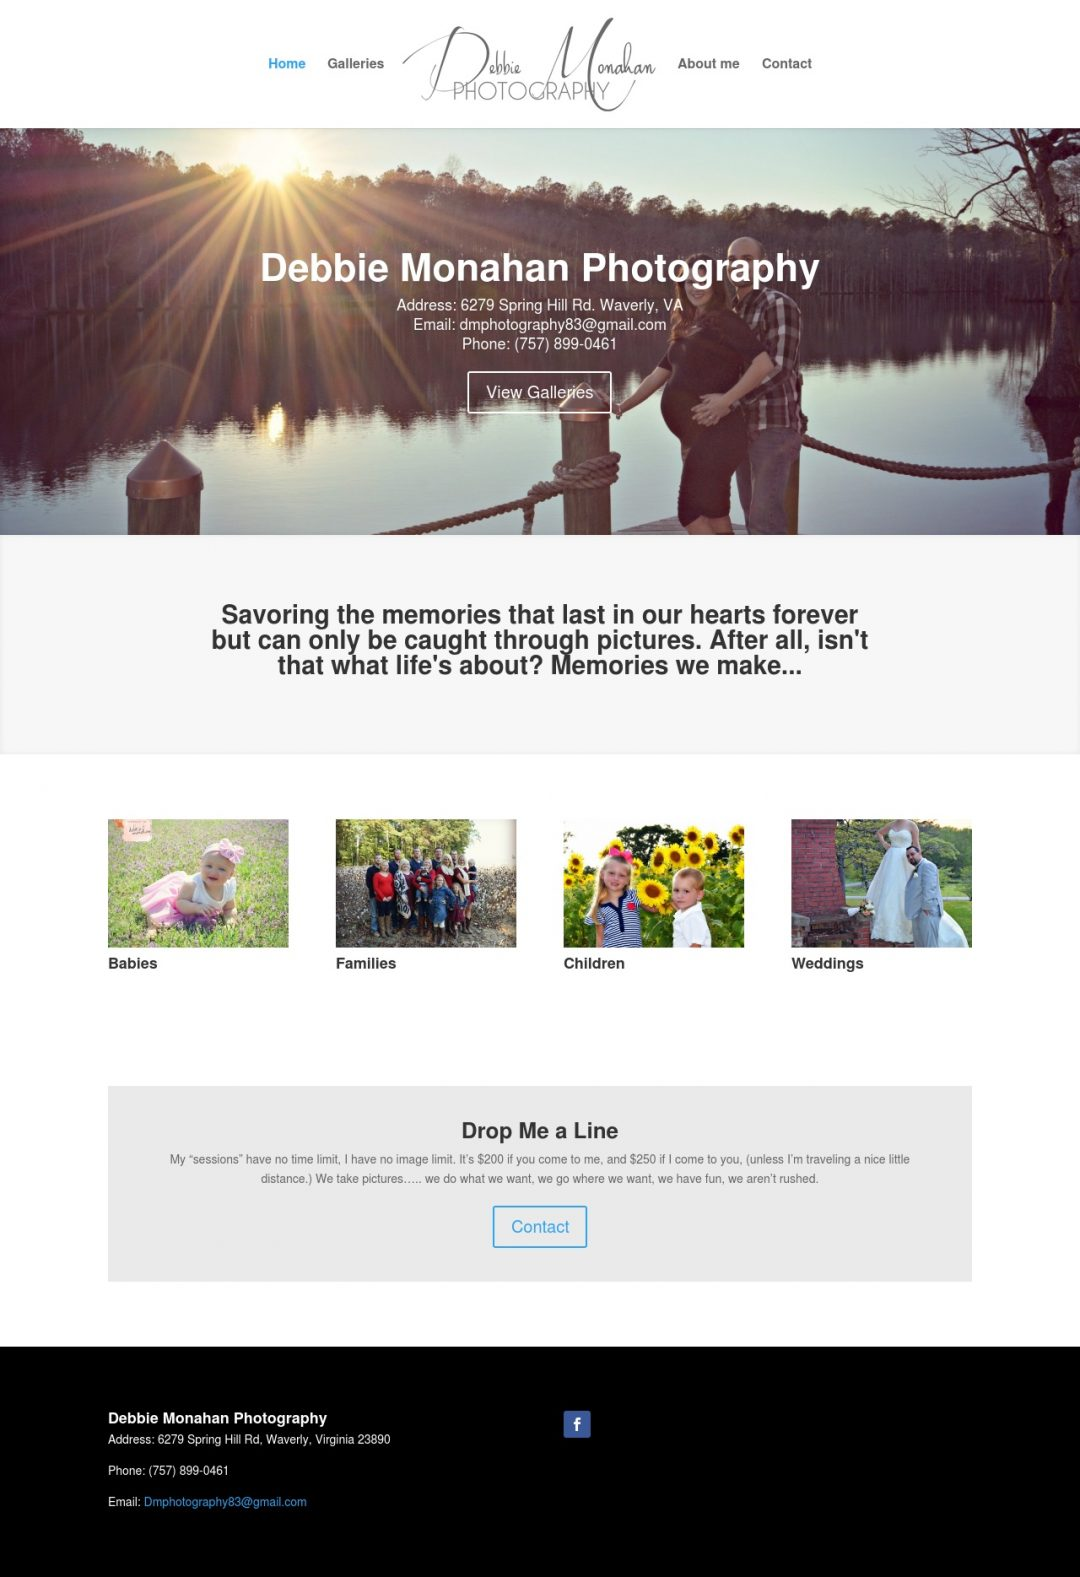 Debbie Monahan Photography